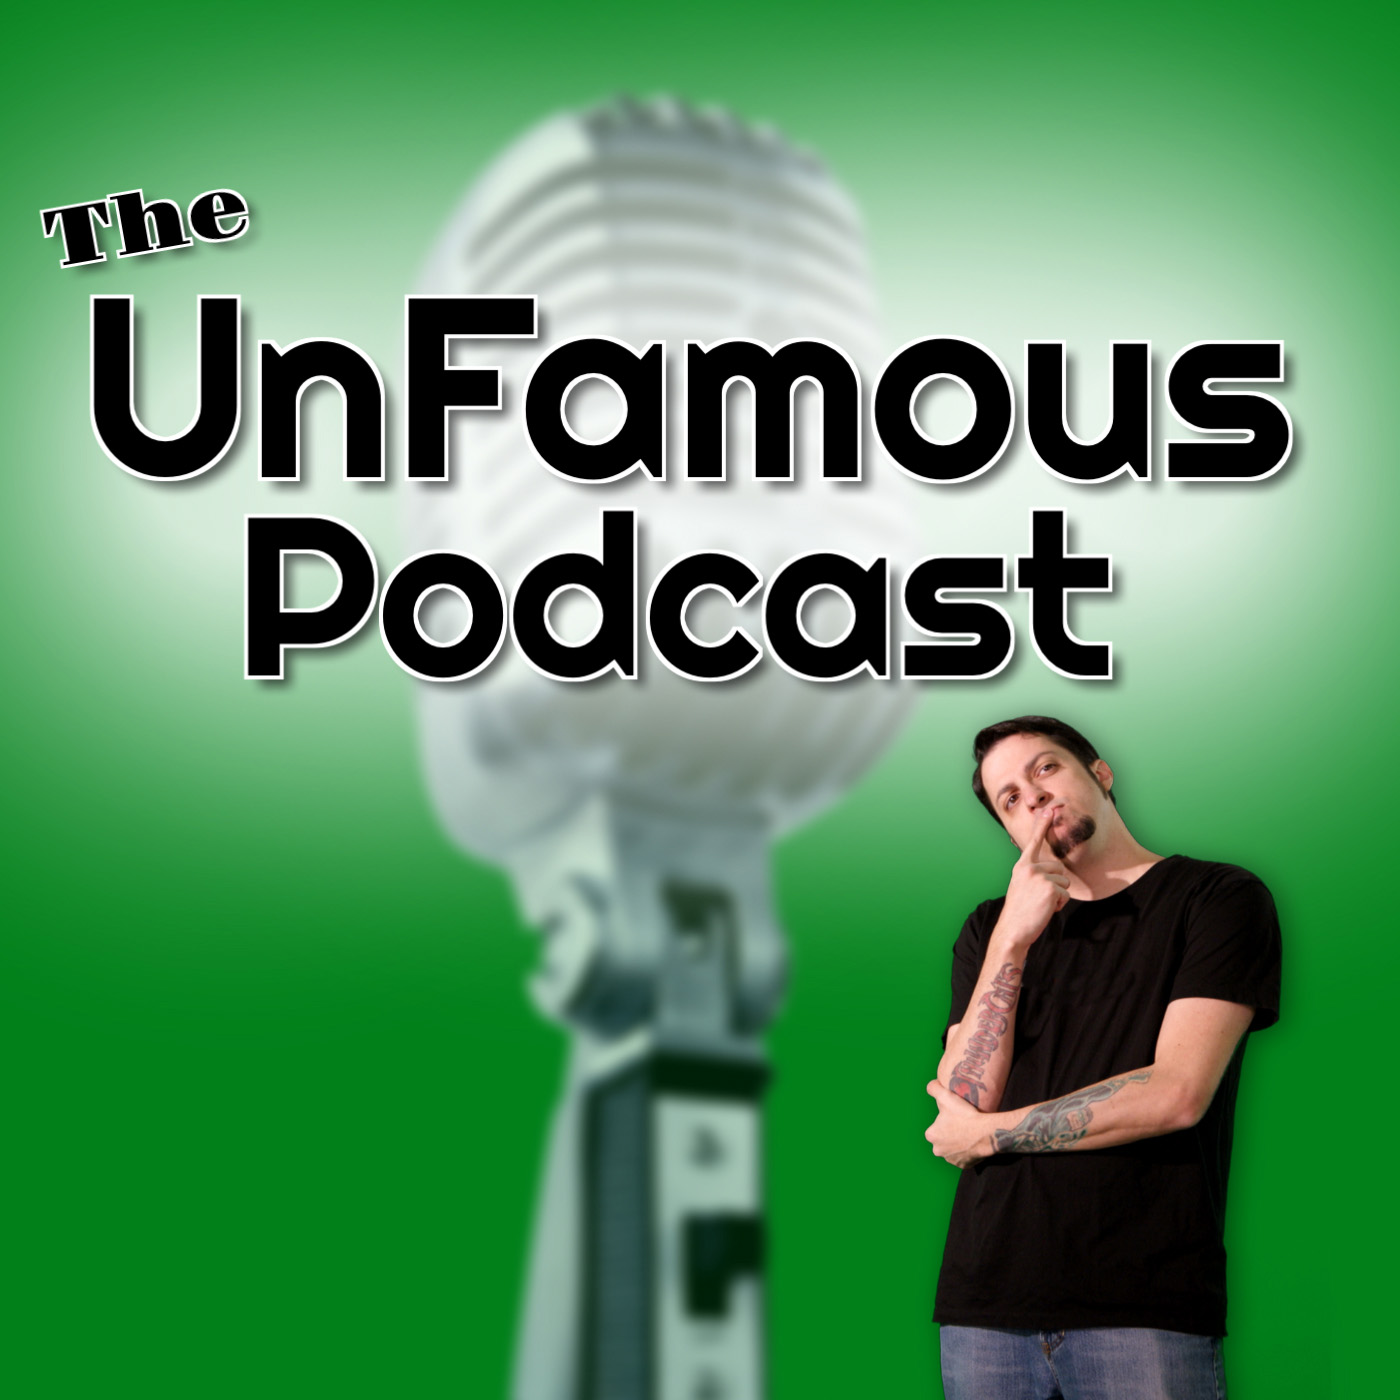 UnFamous Podcast